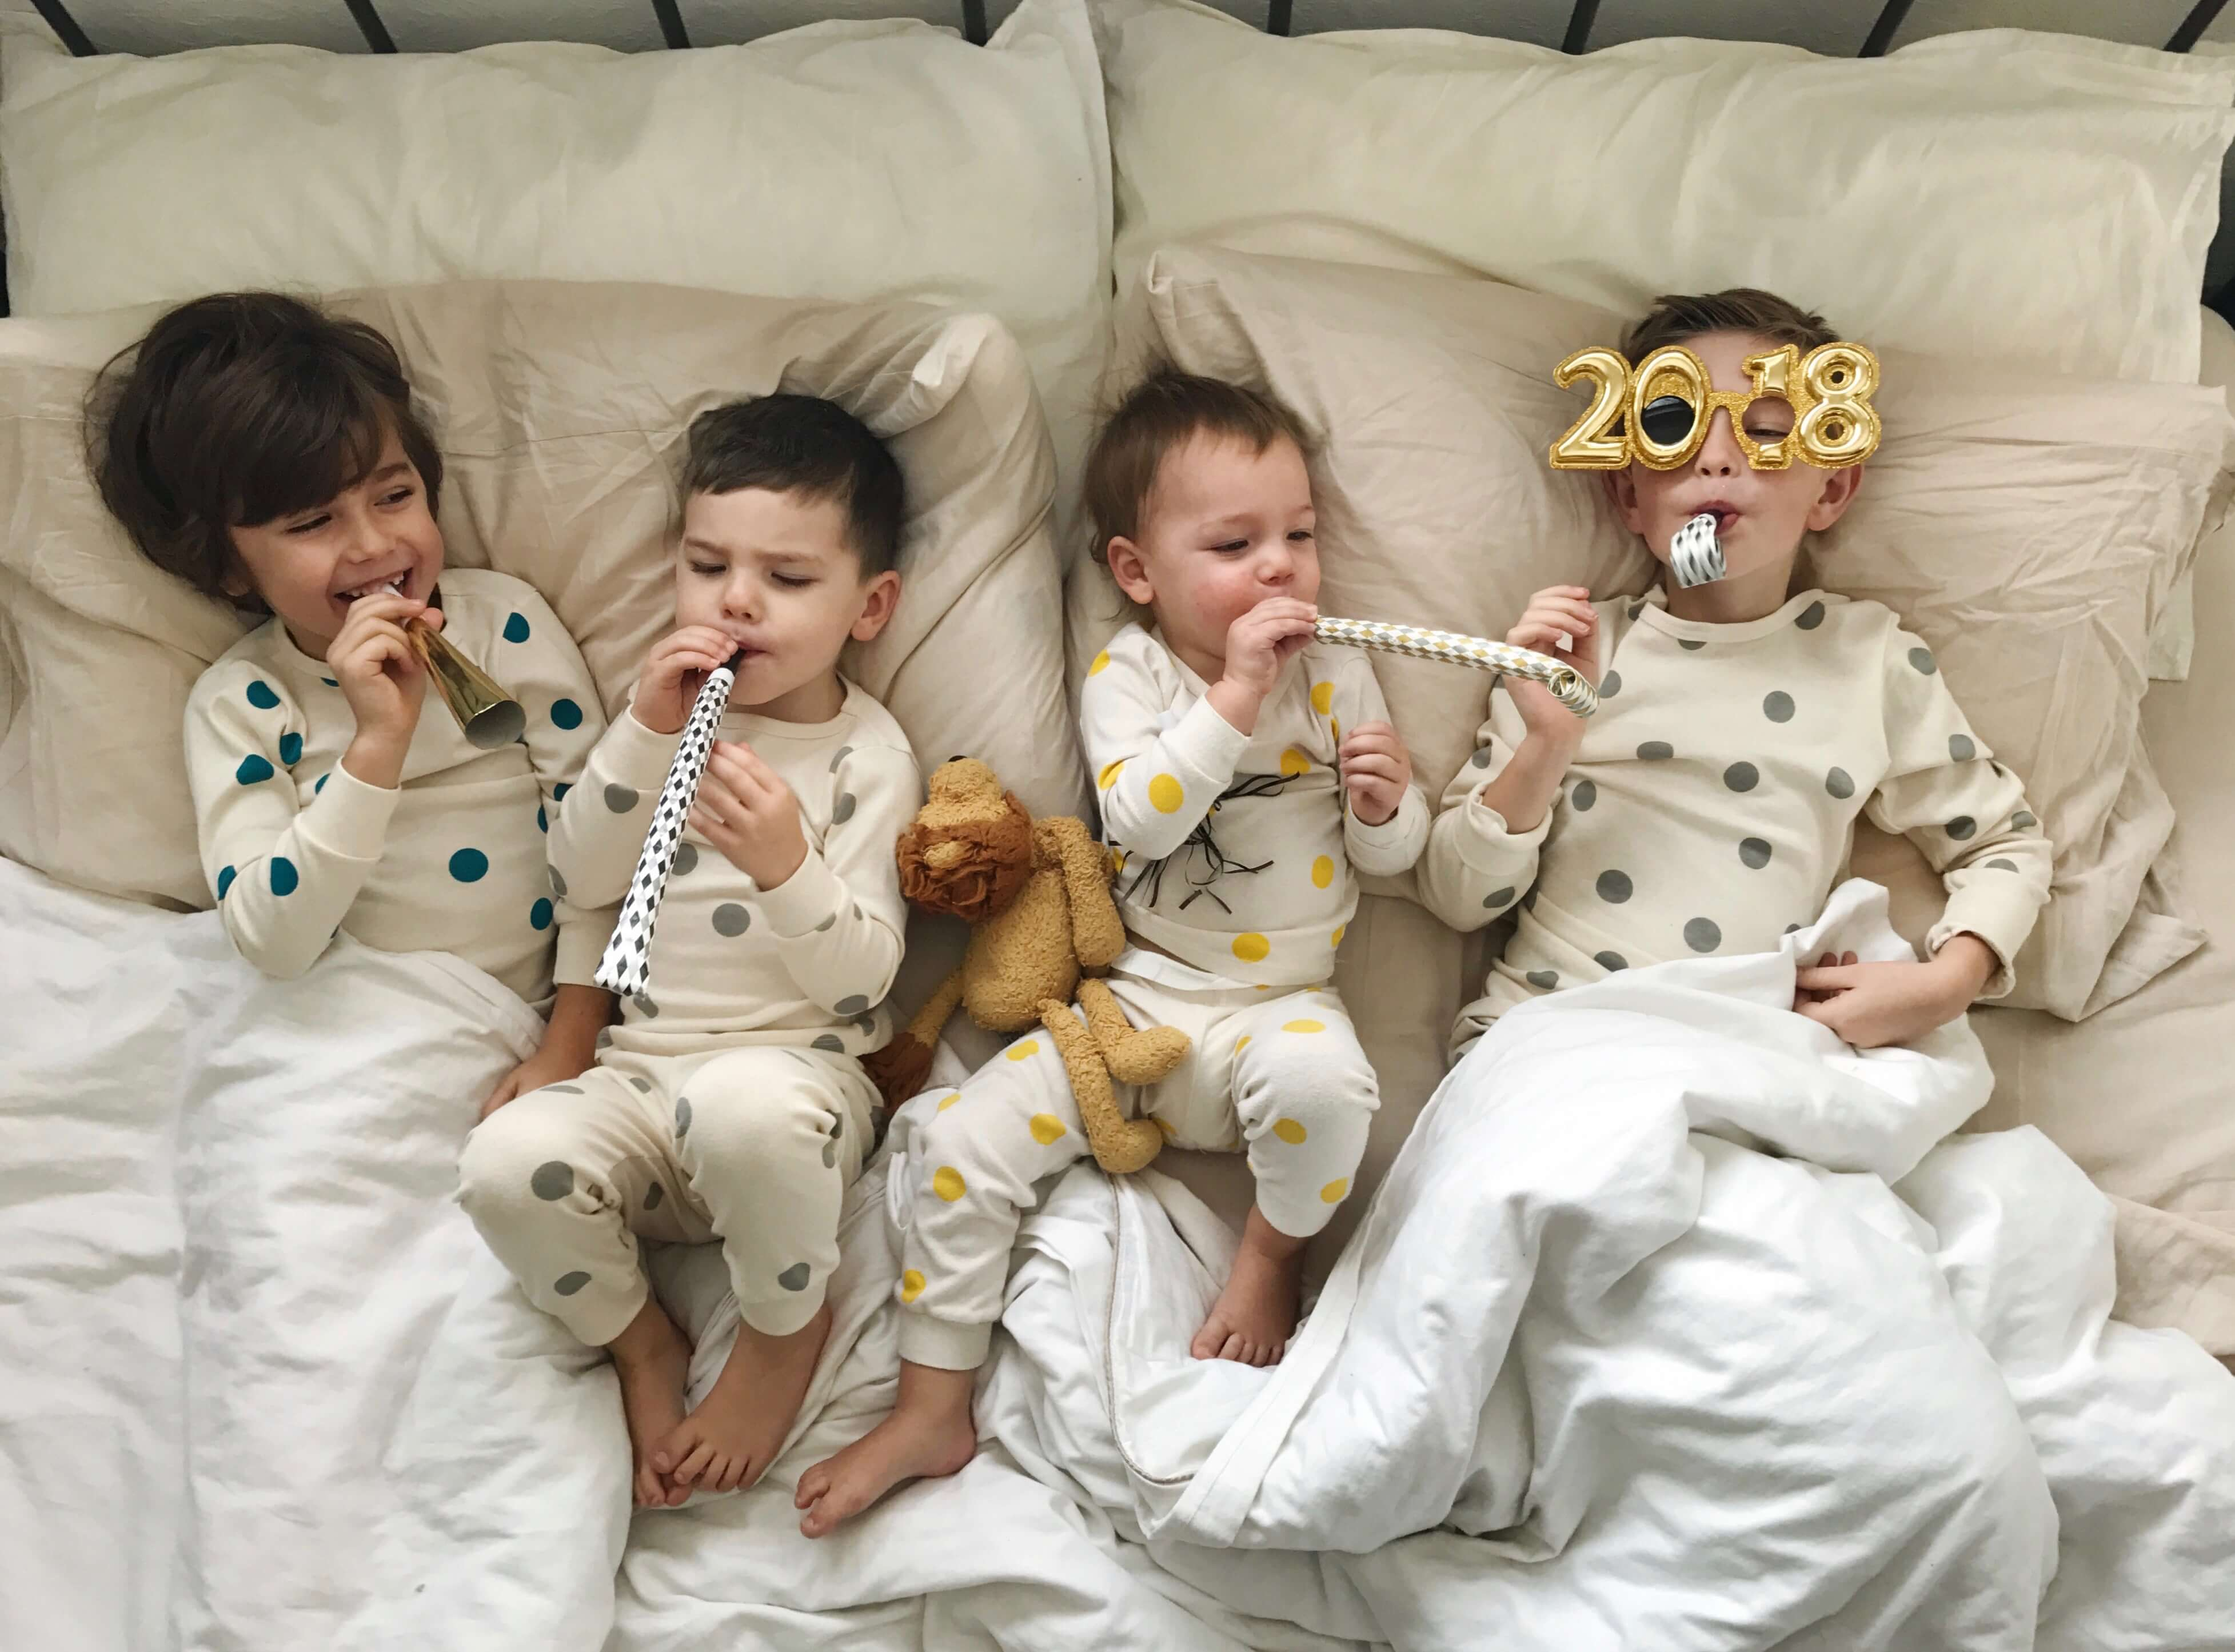 Four children lying in bed with new year's props